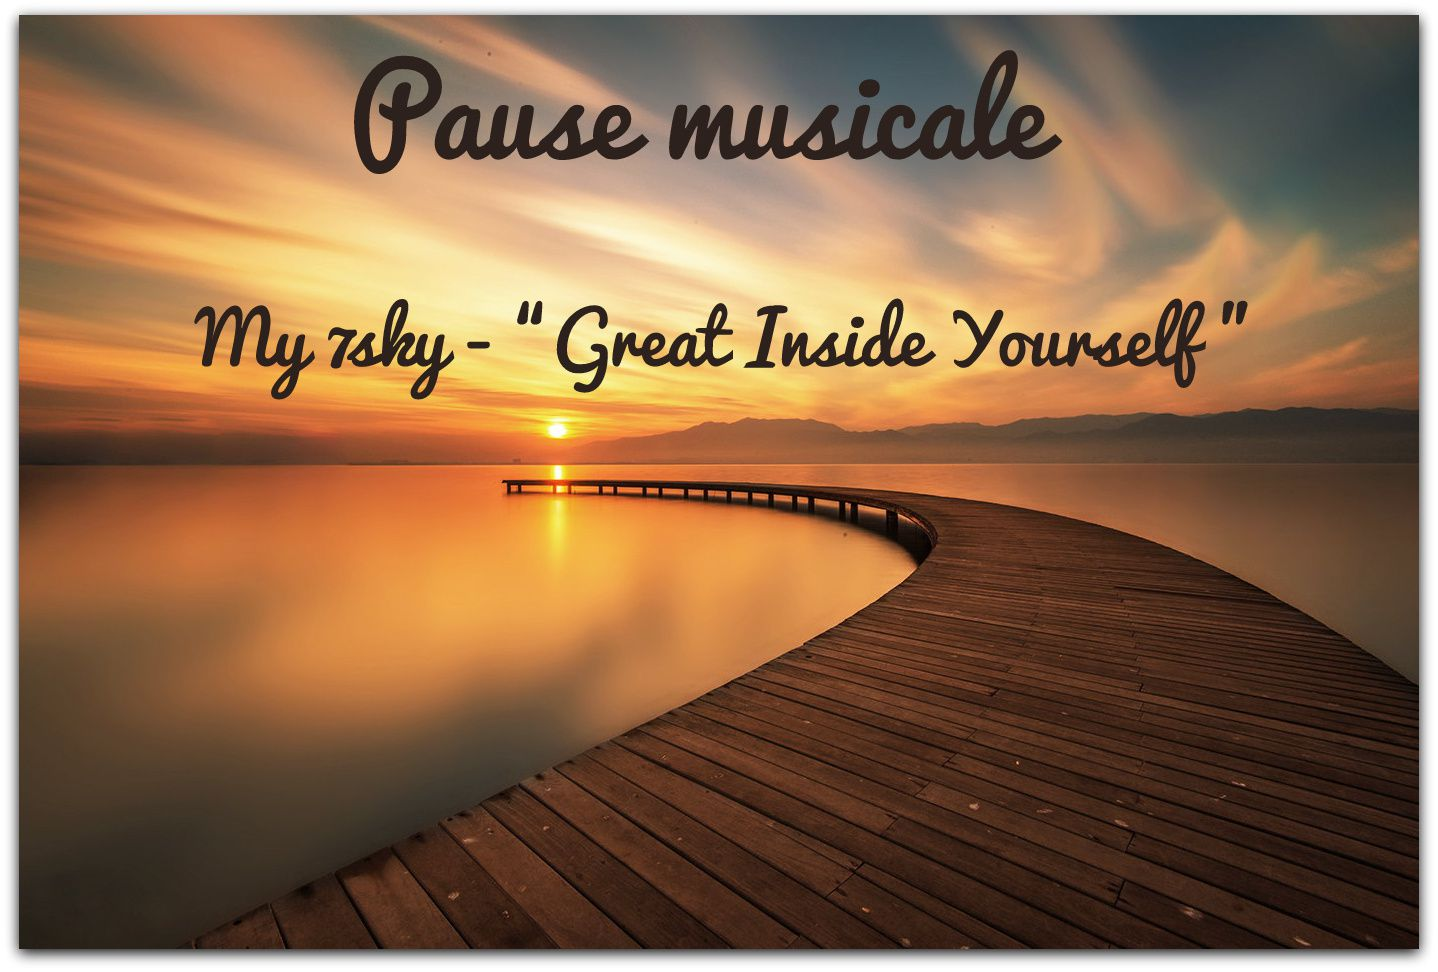 Pause musicale: My 7sky - Great Inside Yourself